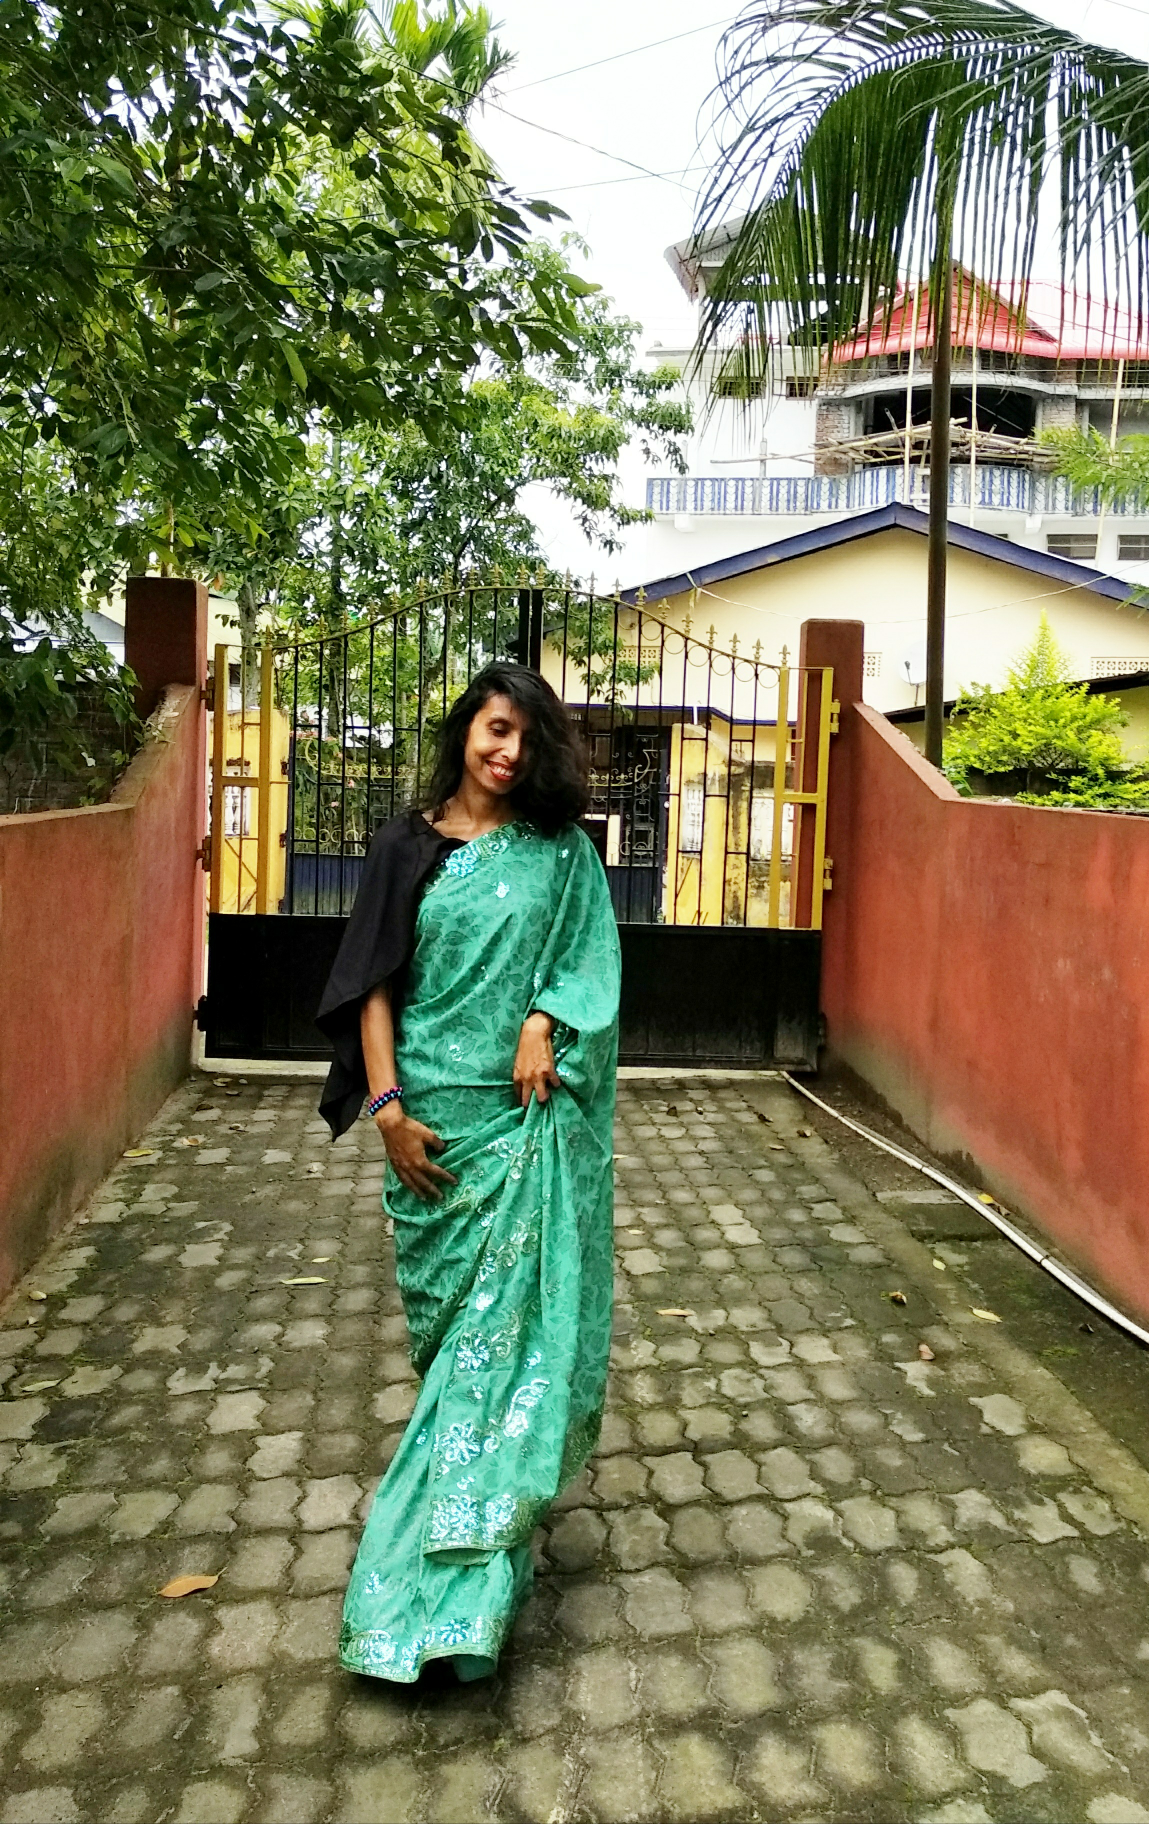 allboutfashion-Saree fashion